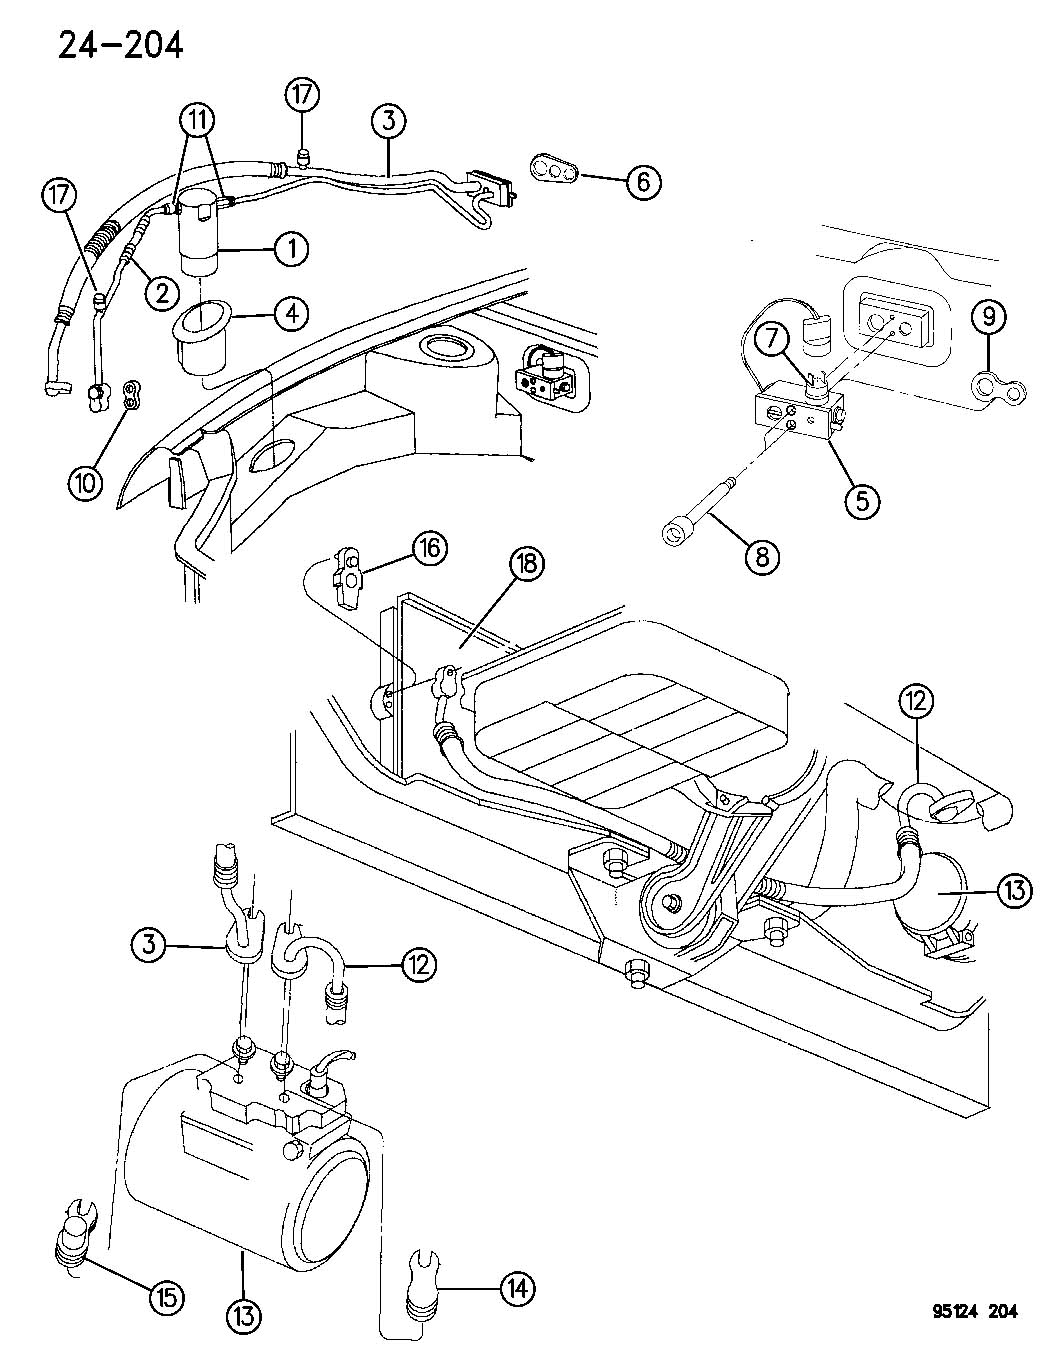 Service manual [Ac Repair Diagram 1999 Chrysler Concorde